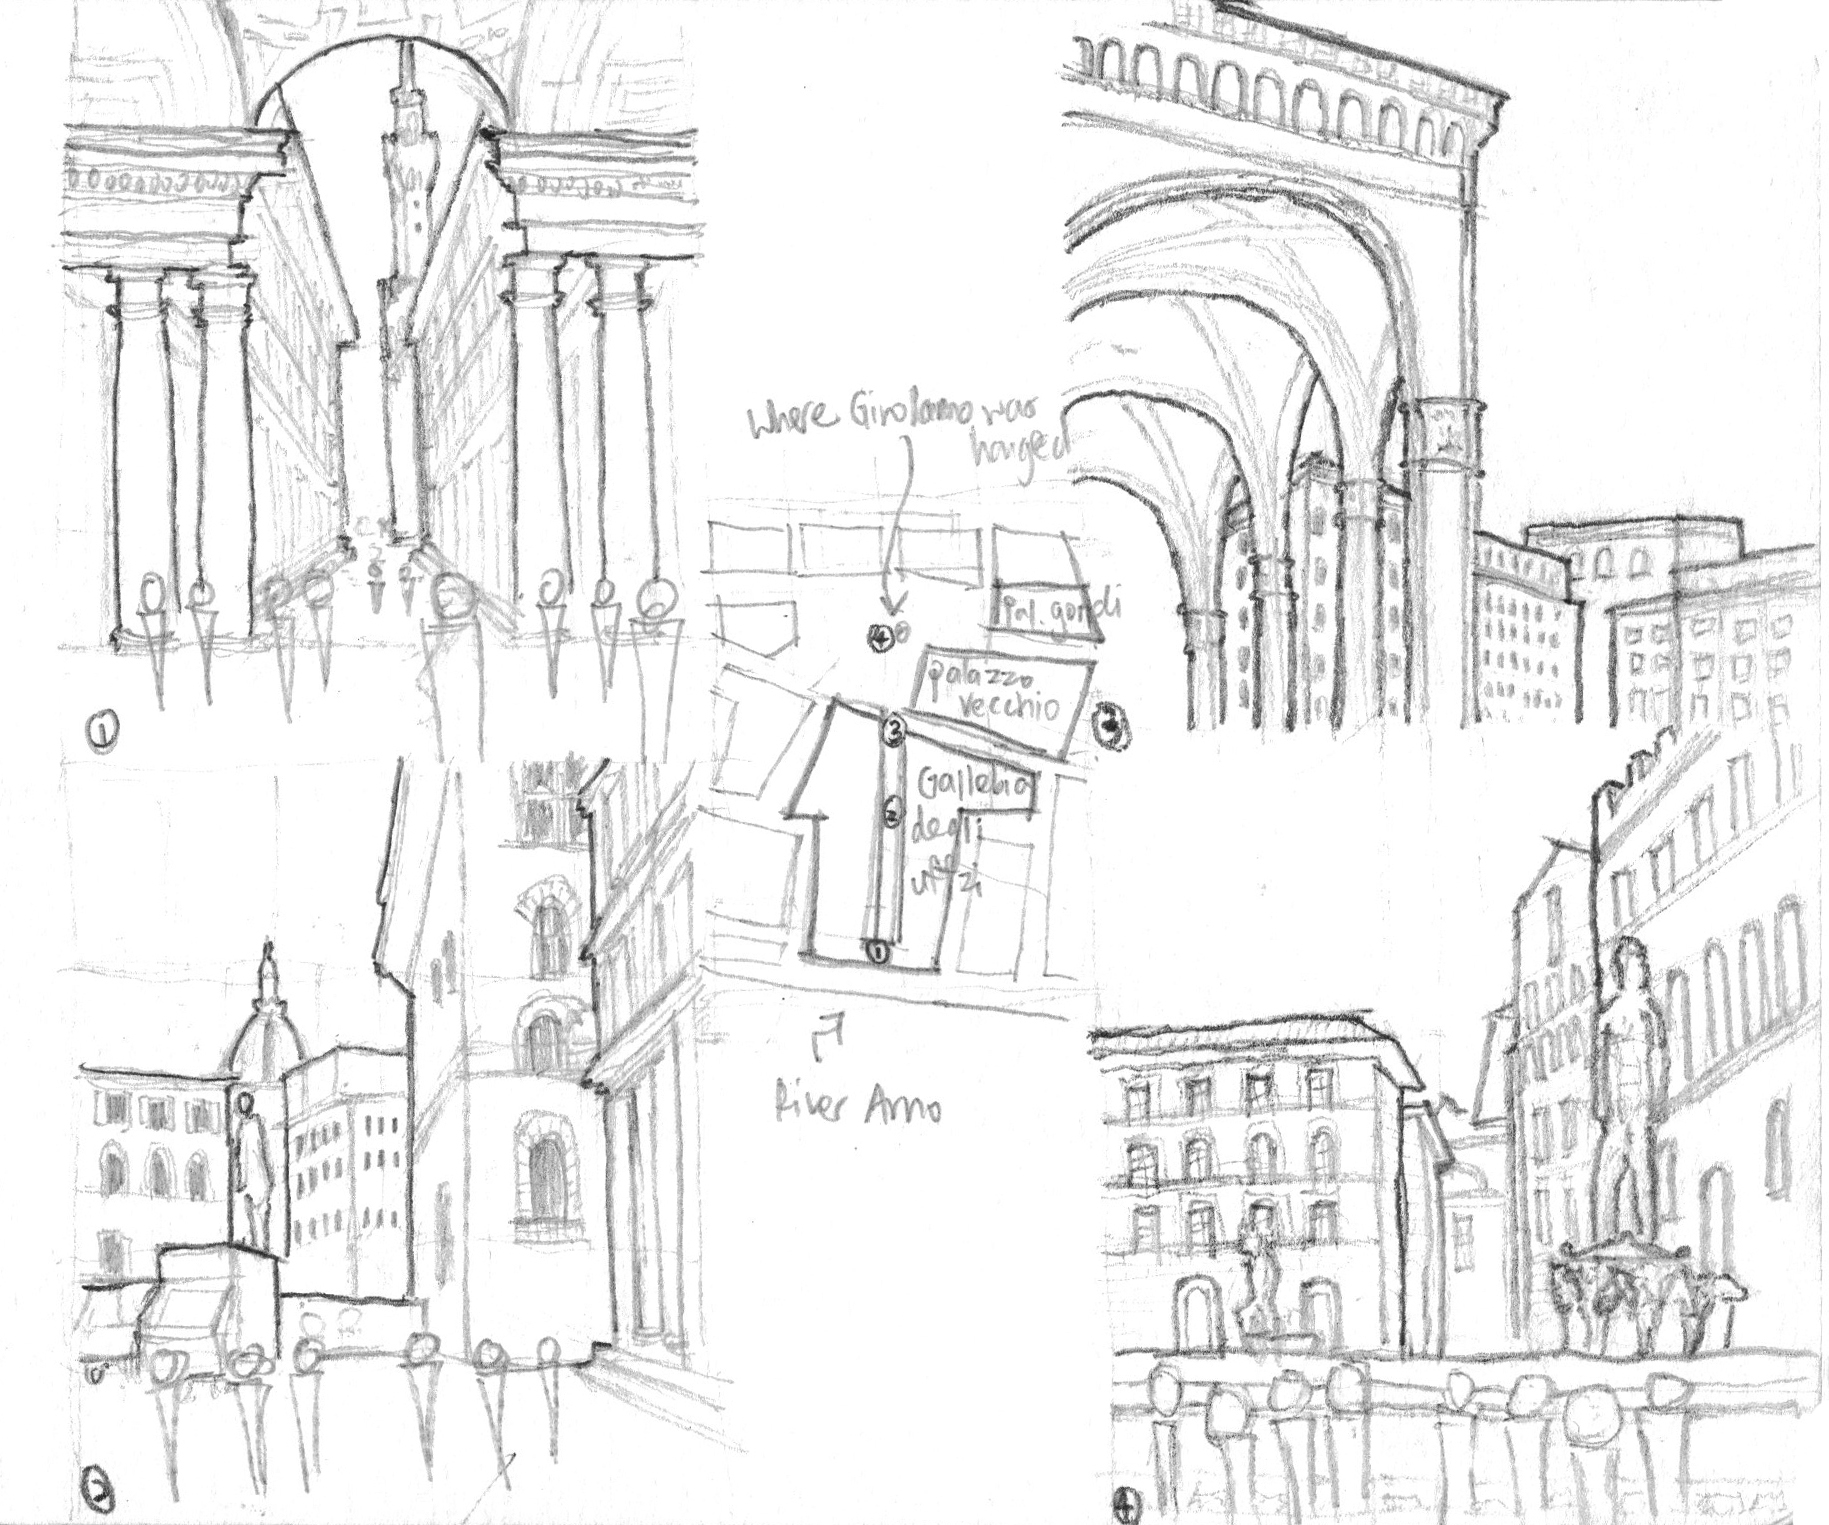 Sketches of Florence, Italy